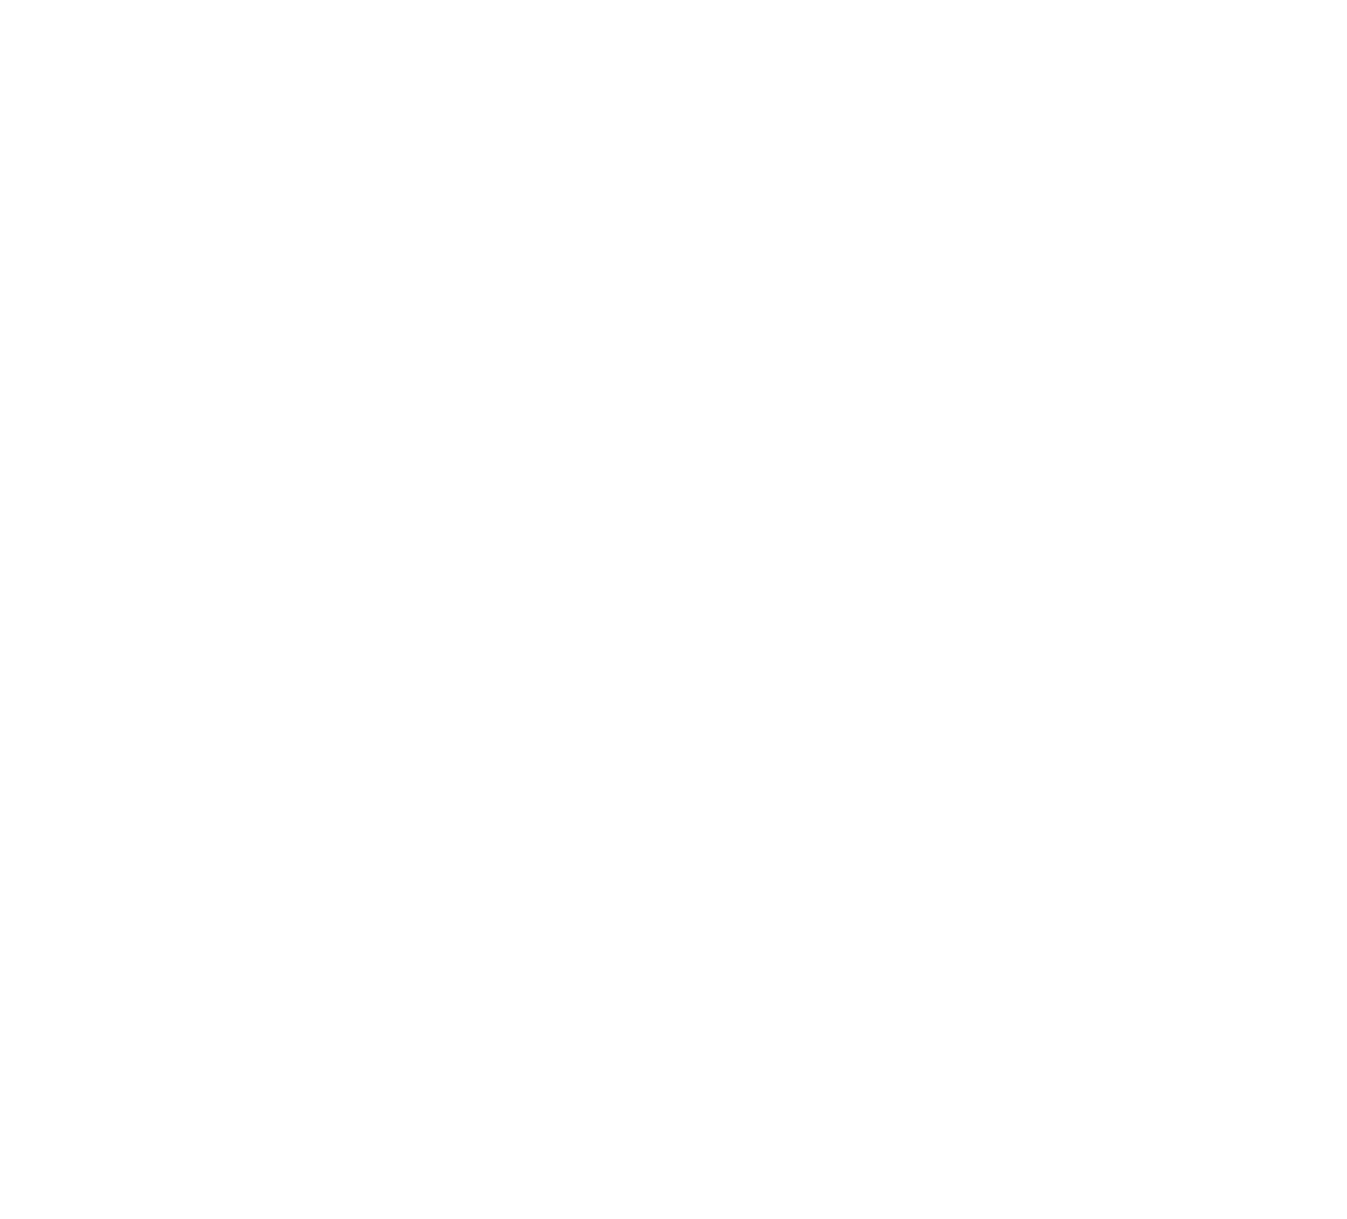 HFH Productions